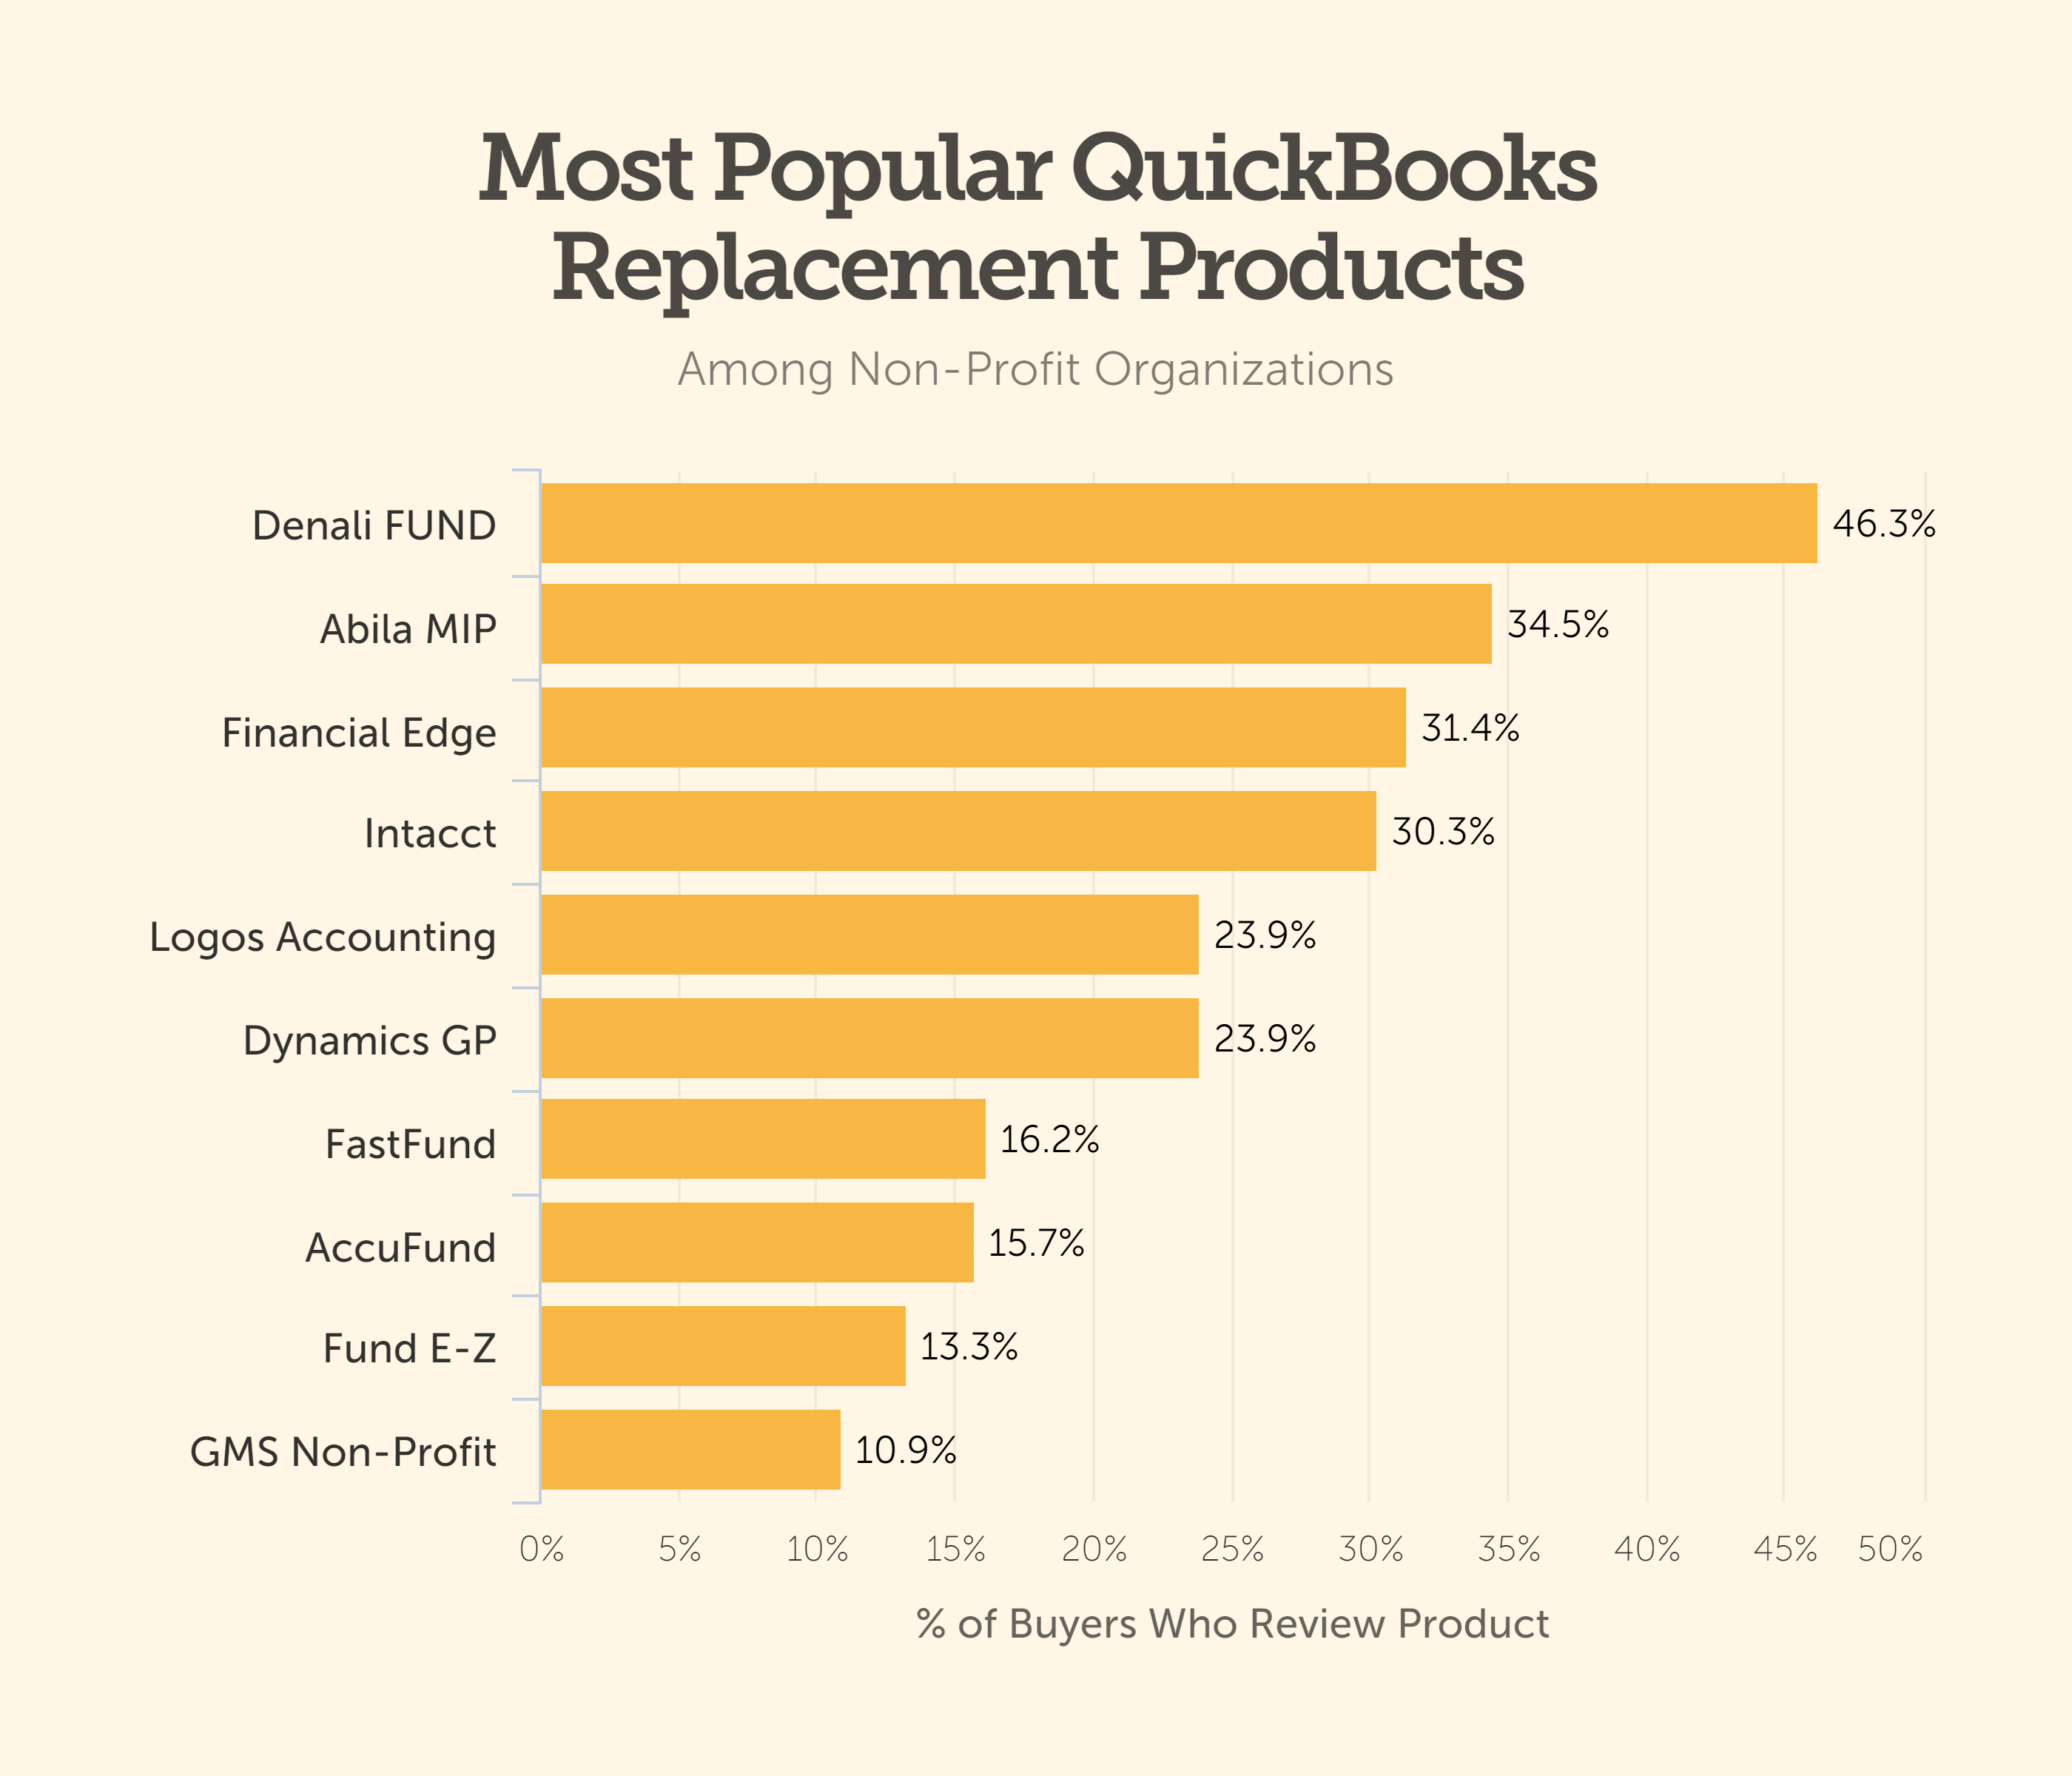 quickbooks replacement product non-profit bar chart